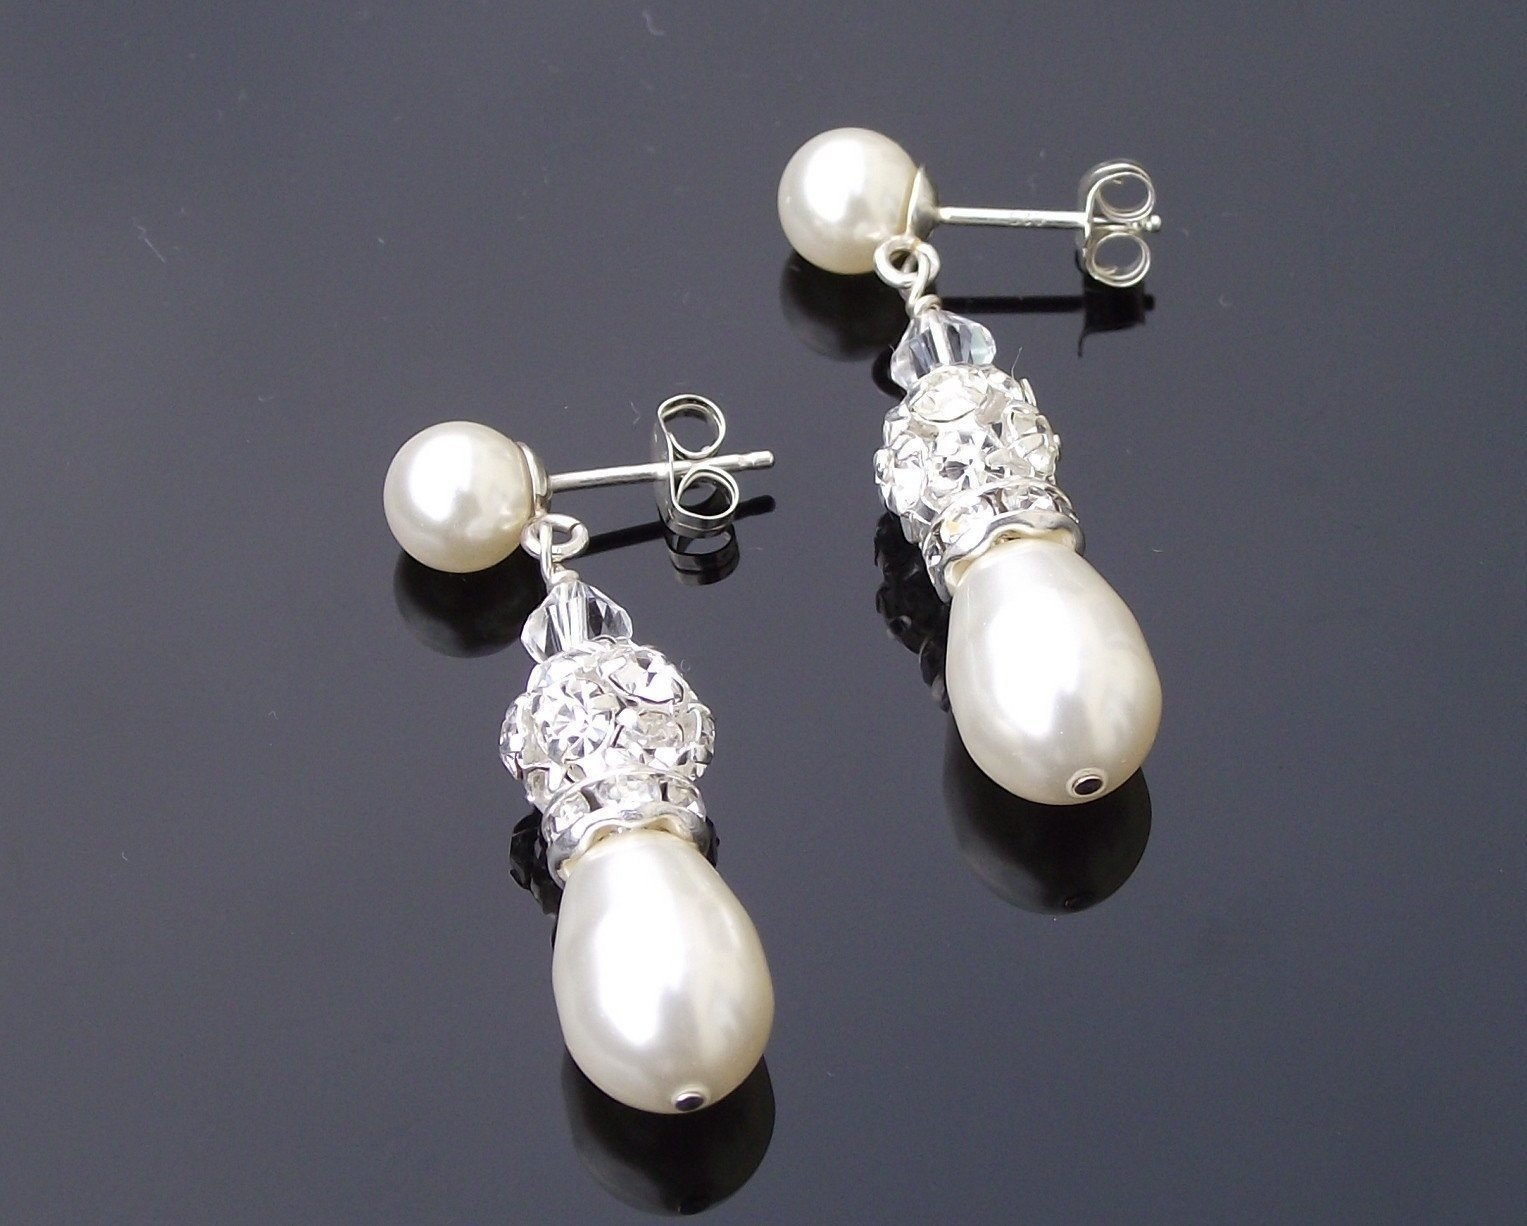 Wedding Earrings - Teardrop Pearl And Crystal Wedding Earrings, Gemma